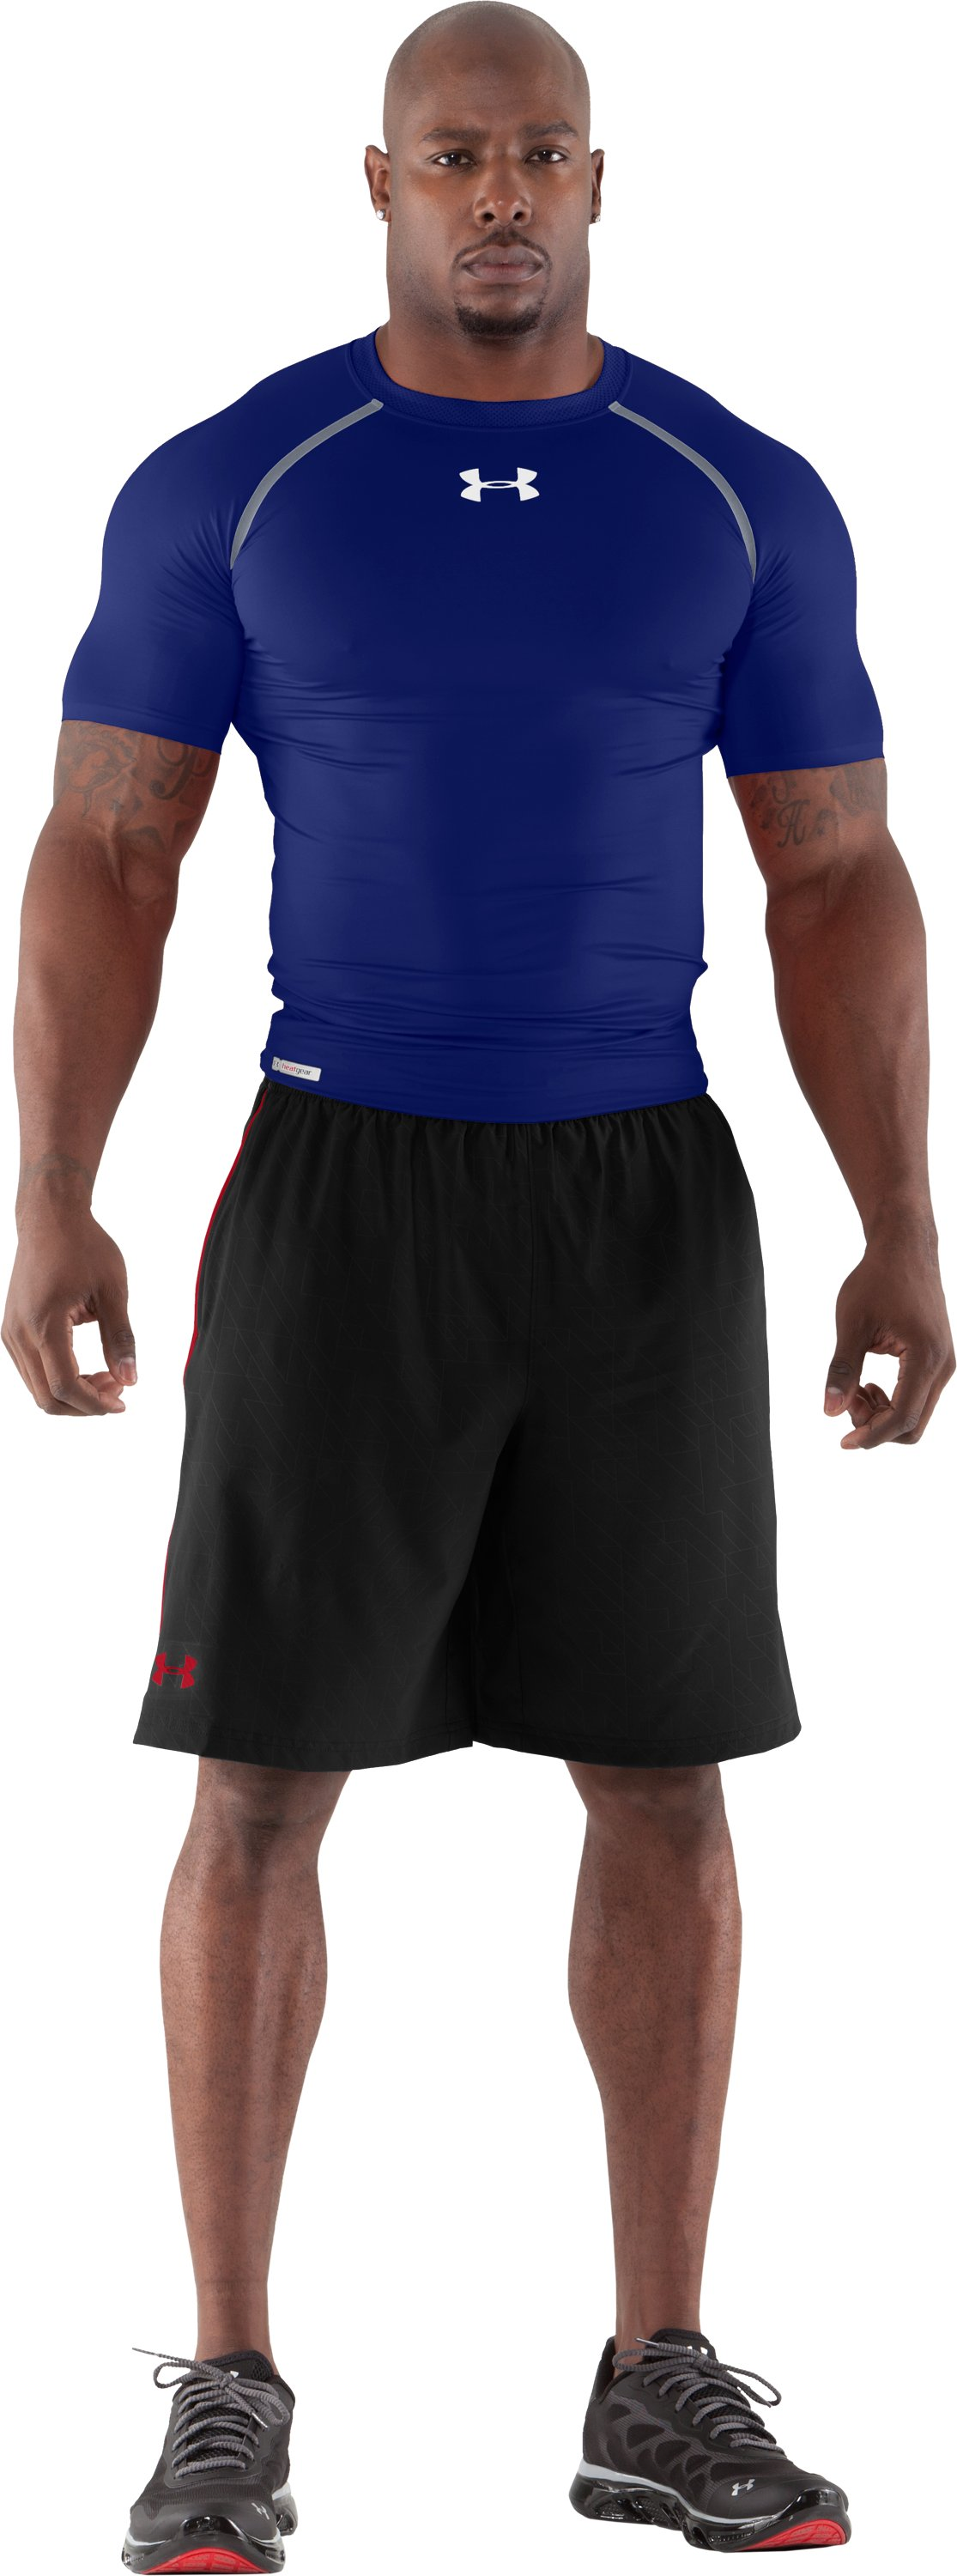 Men's HeatGear® Dynasty Vented Compression Short Sleeve, Royal, Front